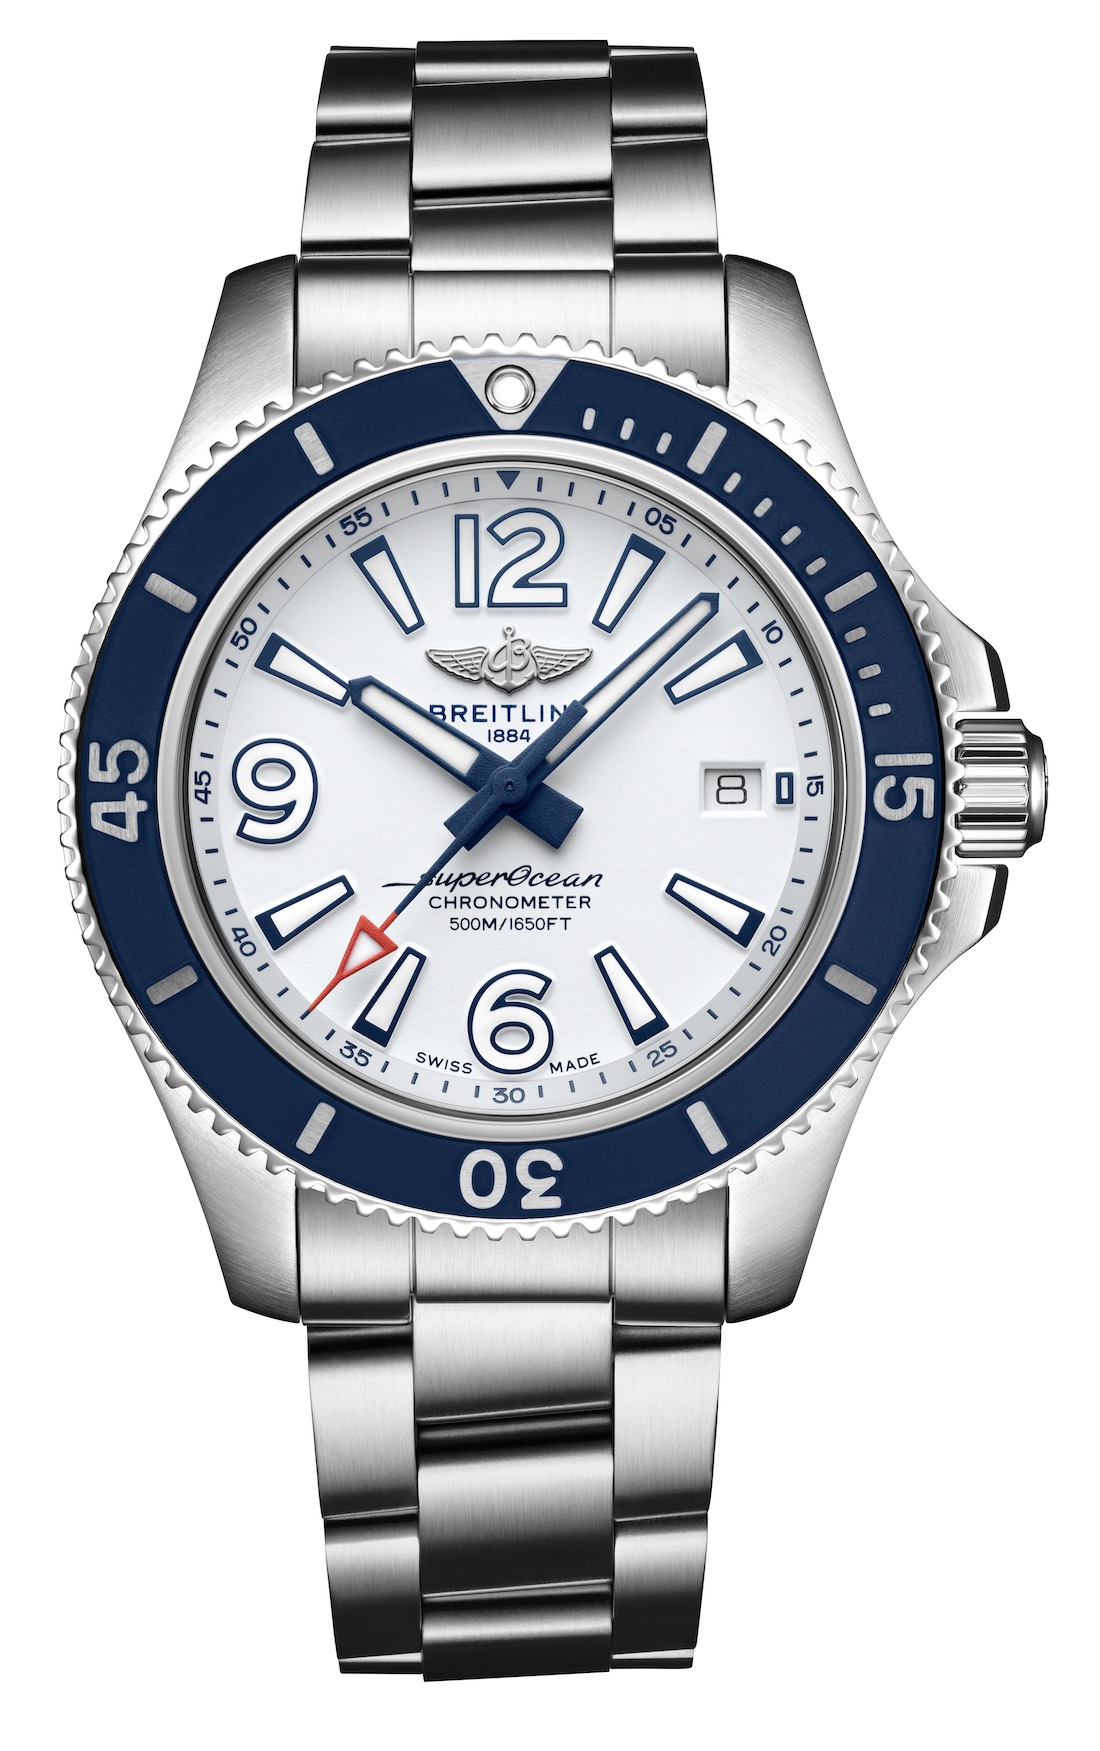 13_Superocean 42 with white dial and stainless-steel bracelet_22859_19-03-19.jpeg